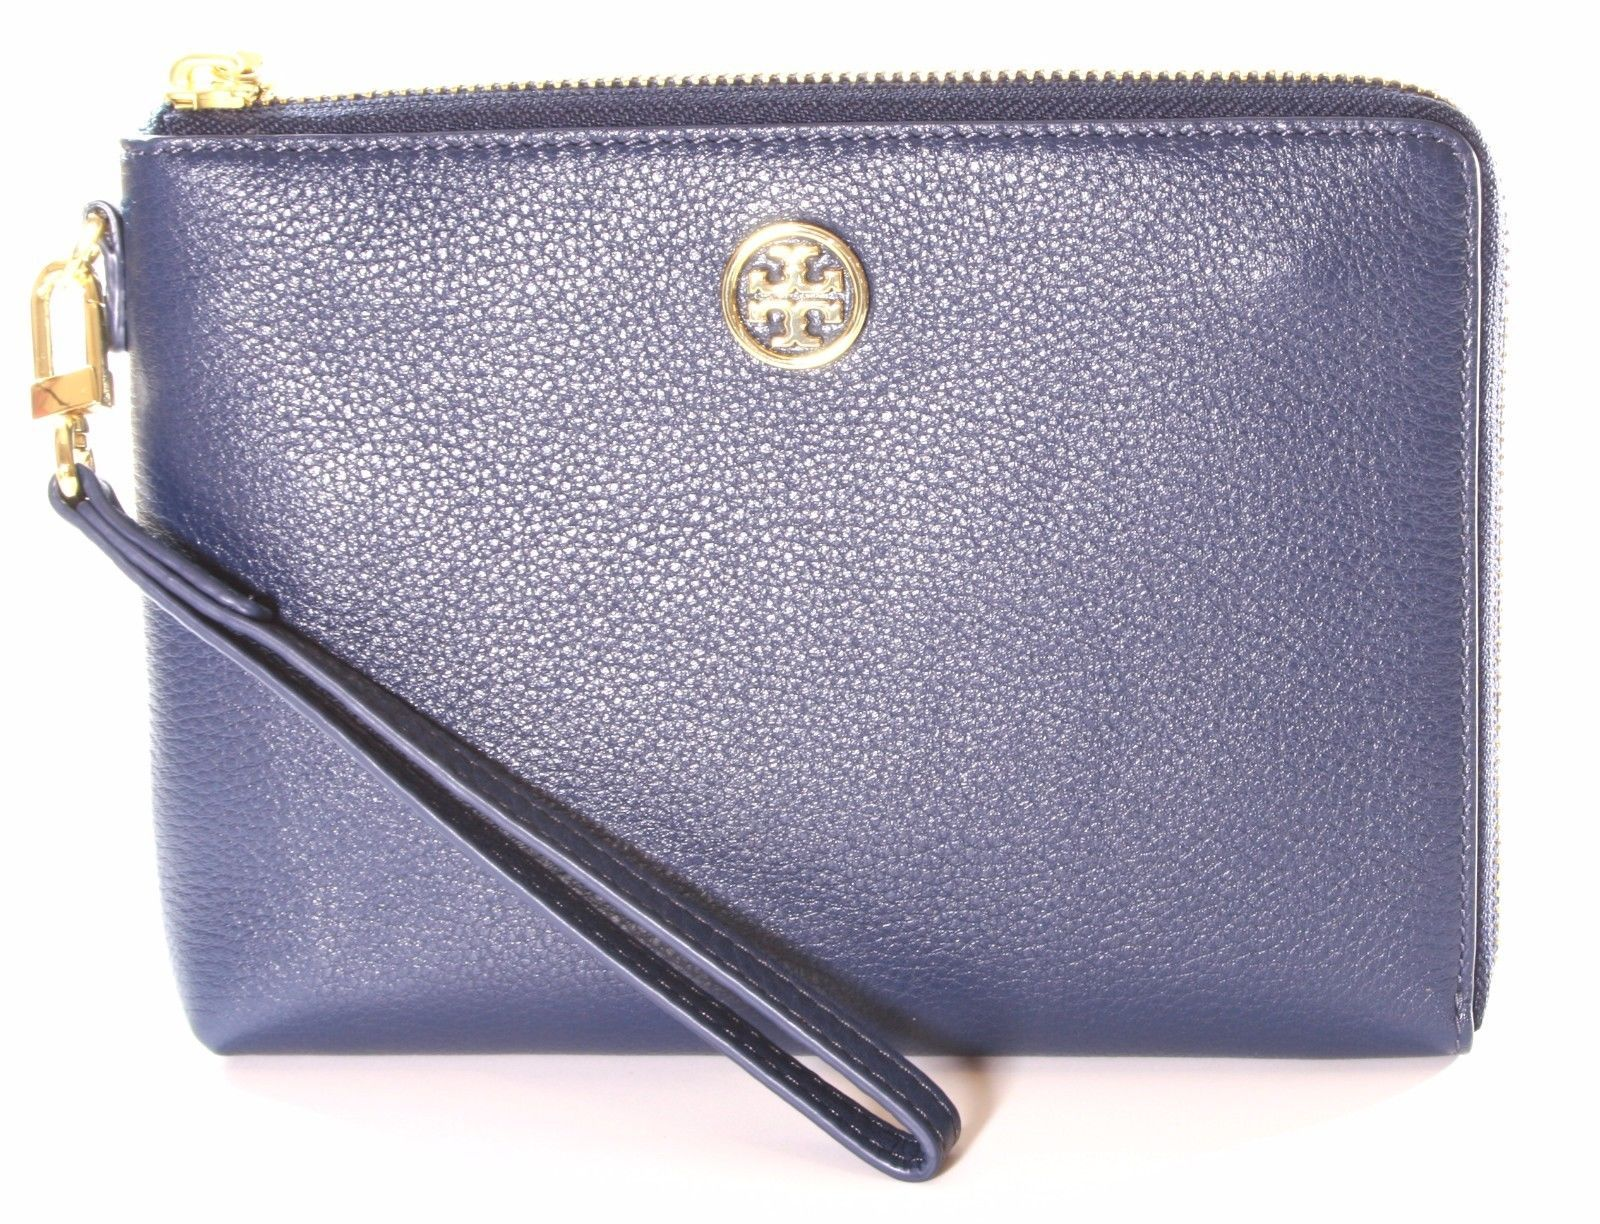 Primary image for Tory Burch Landon Large Leather Zip Around Wristlet Hudson Bay Blue